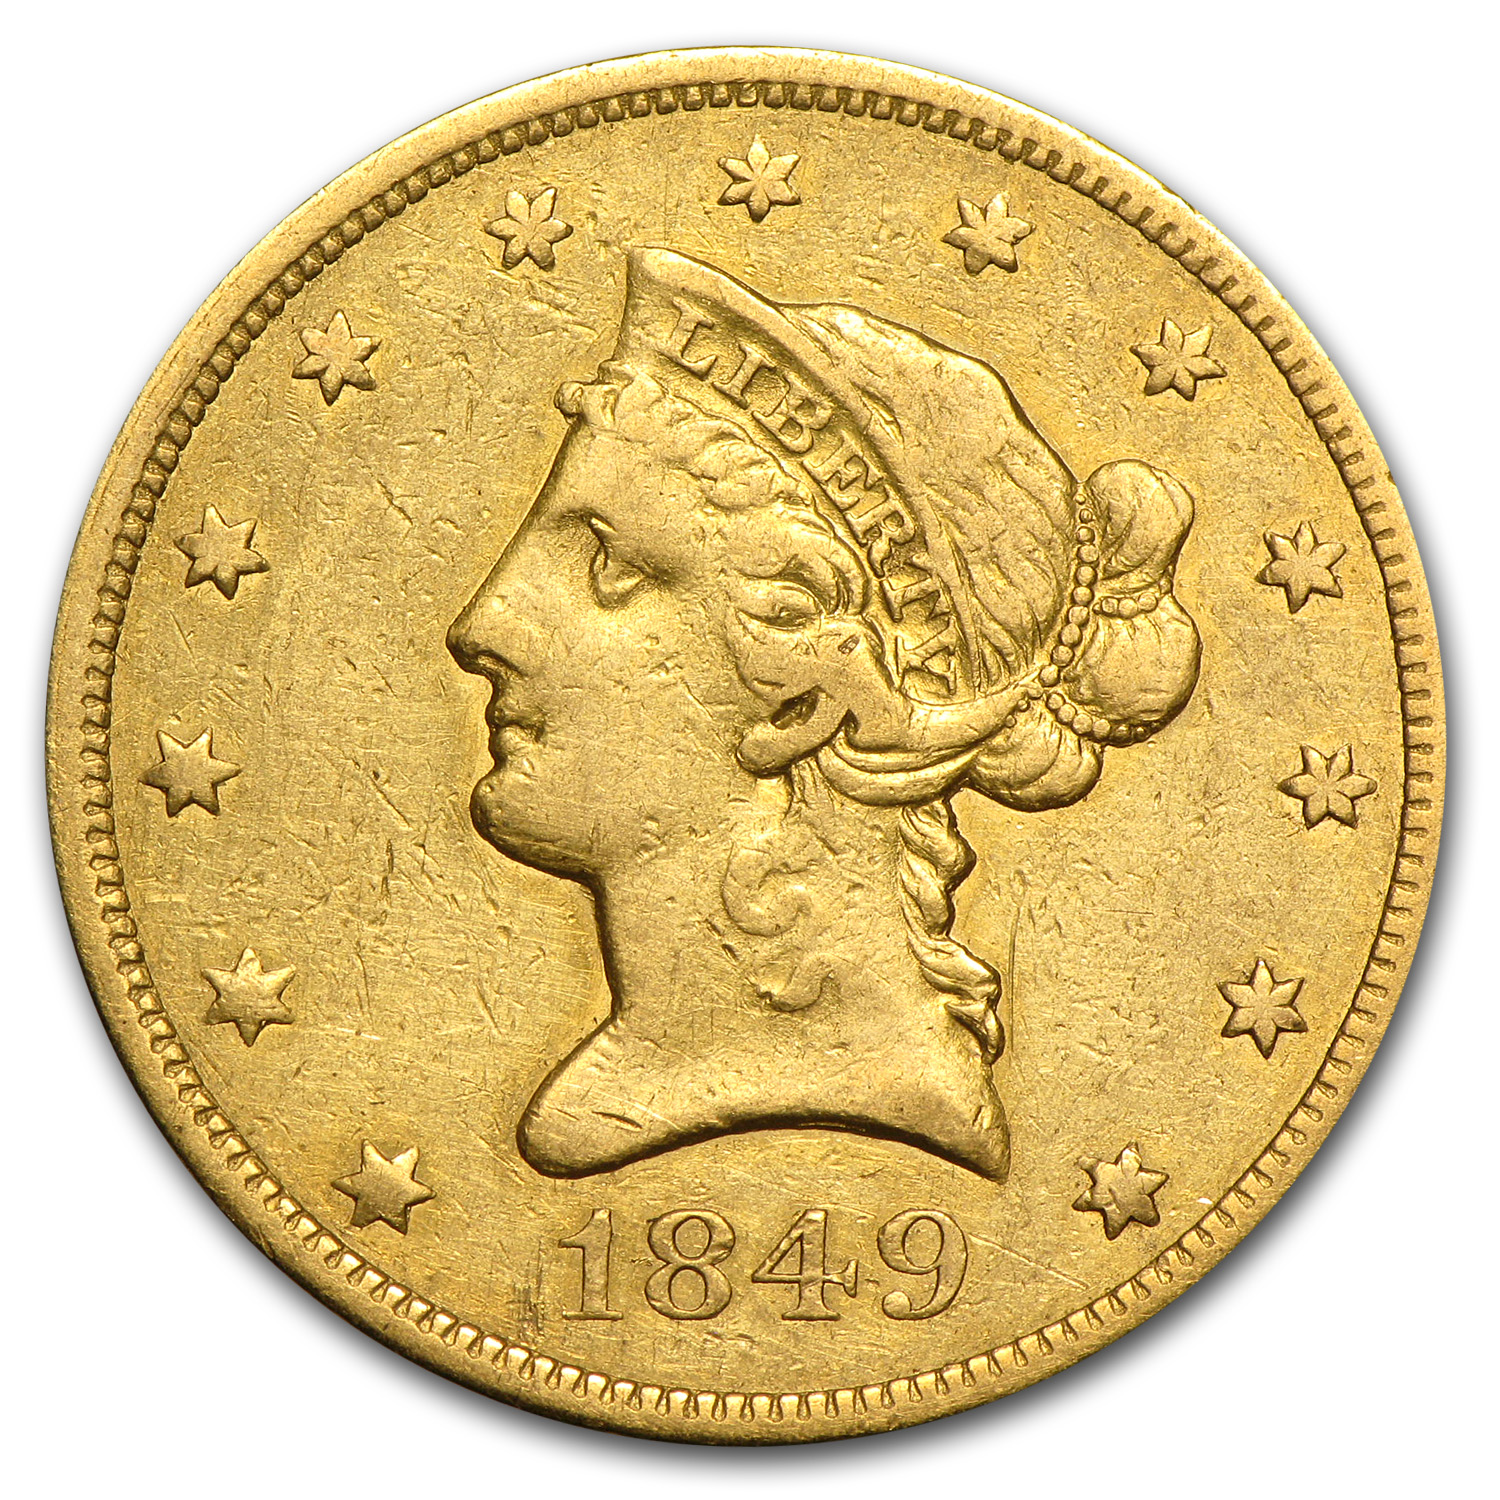 1849 $10 Liberty Gold Eagle Fine Details (Cleaned)